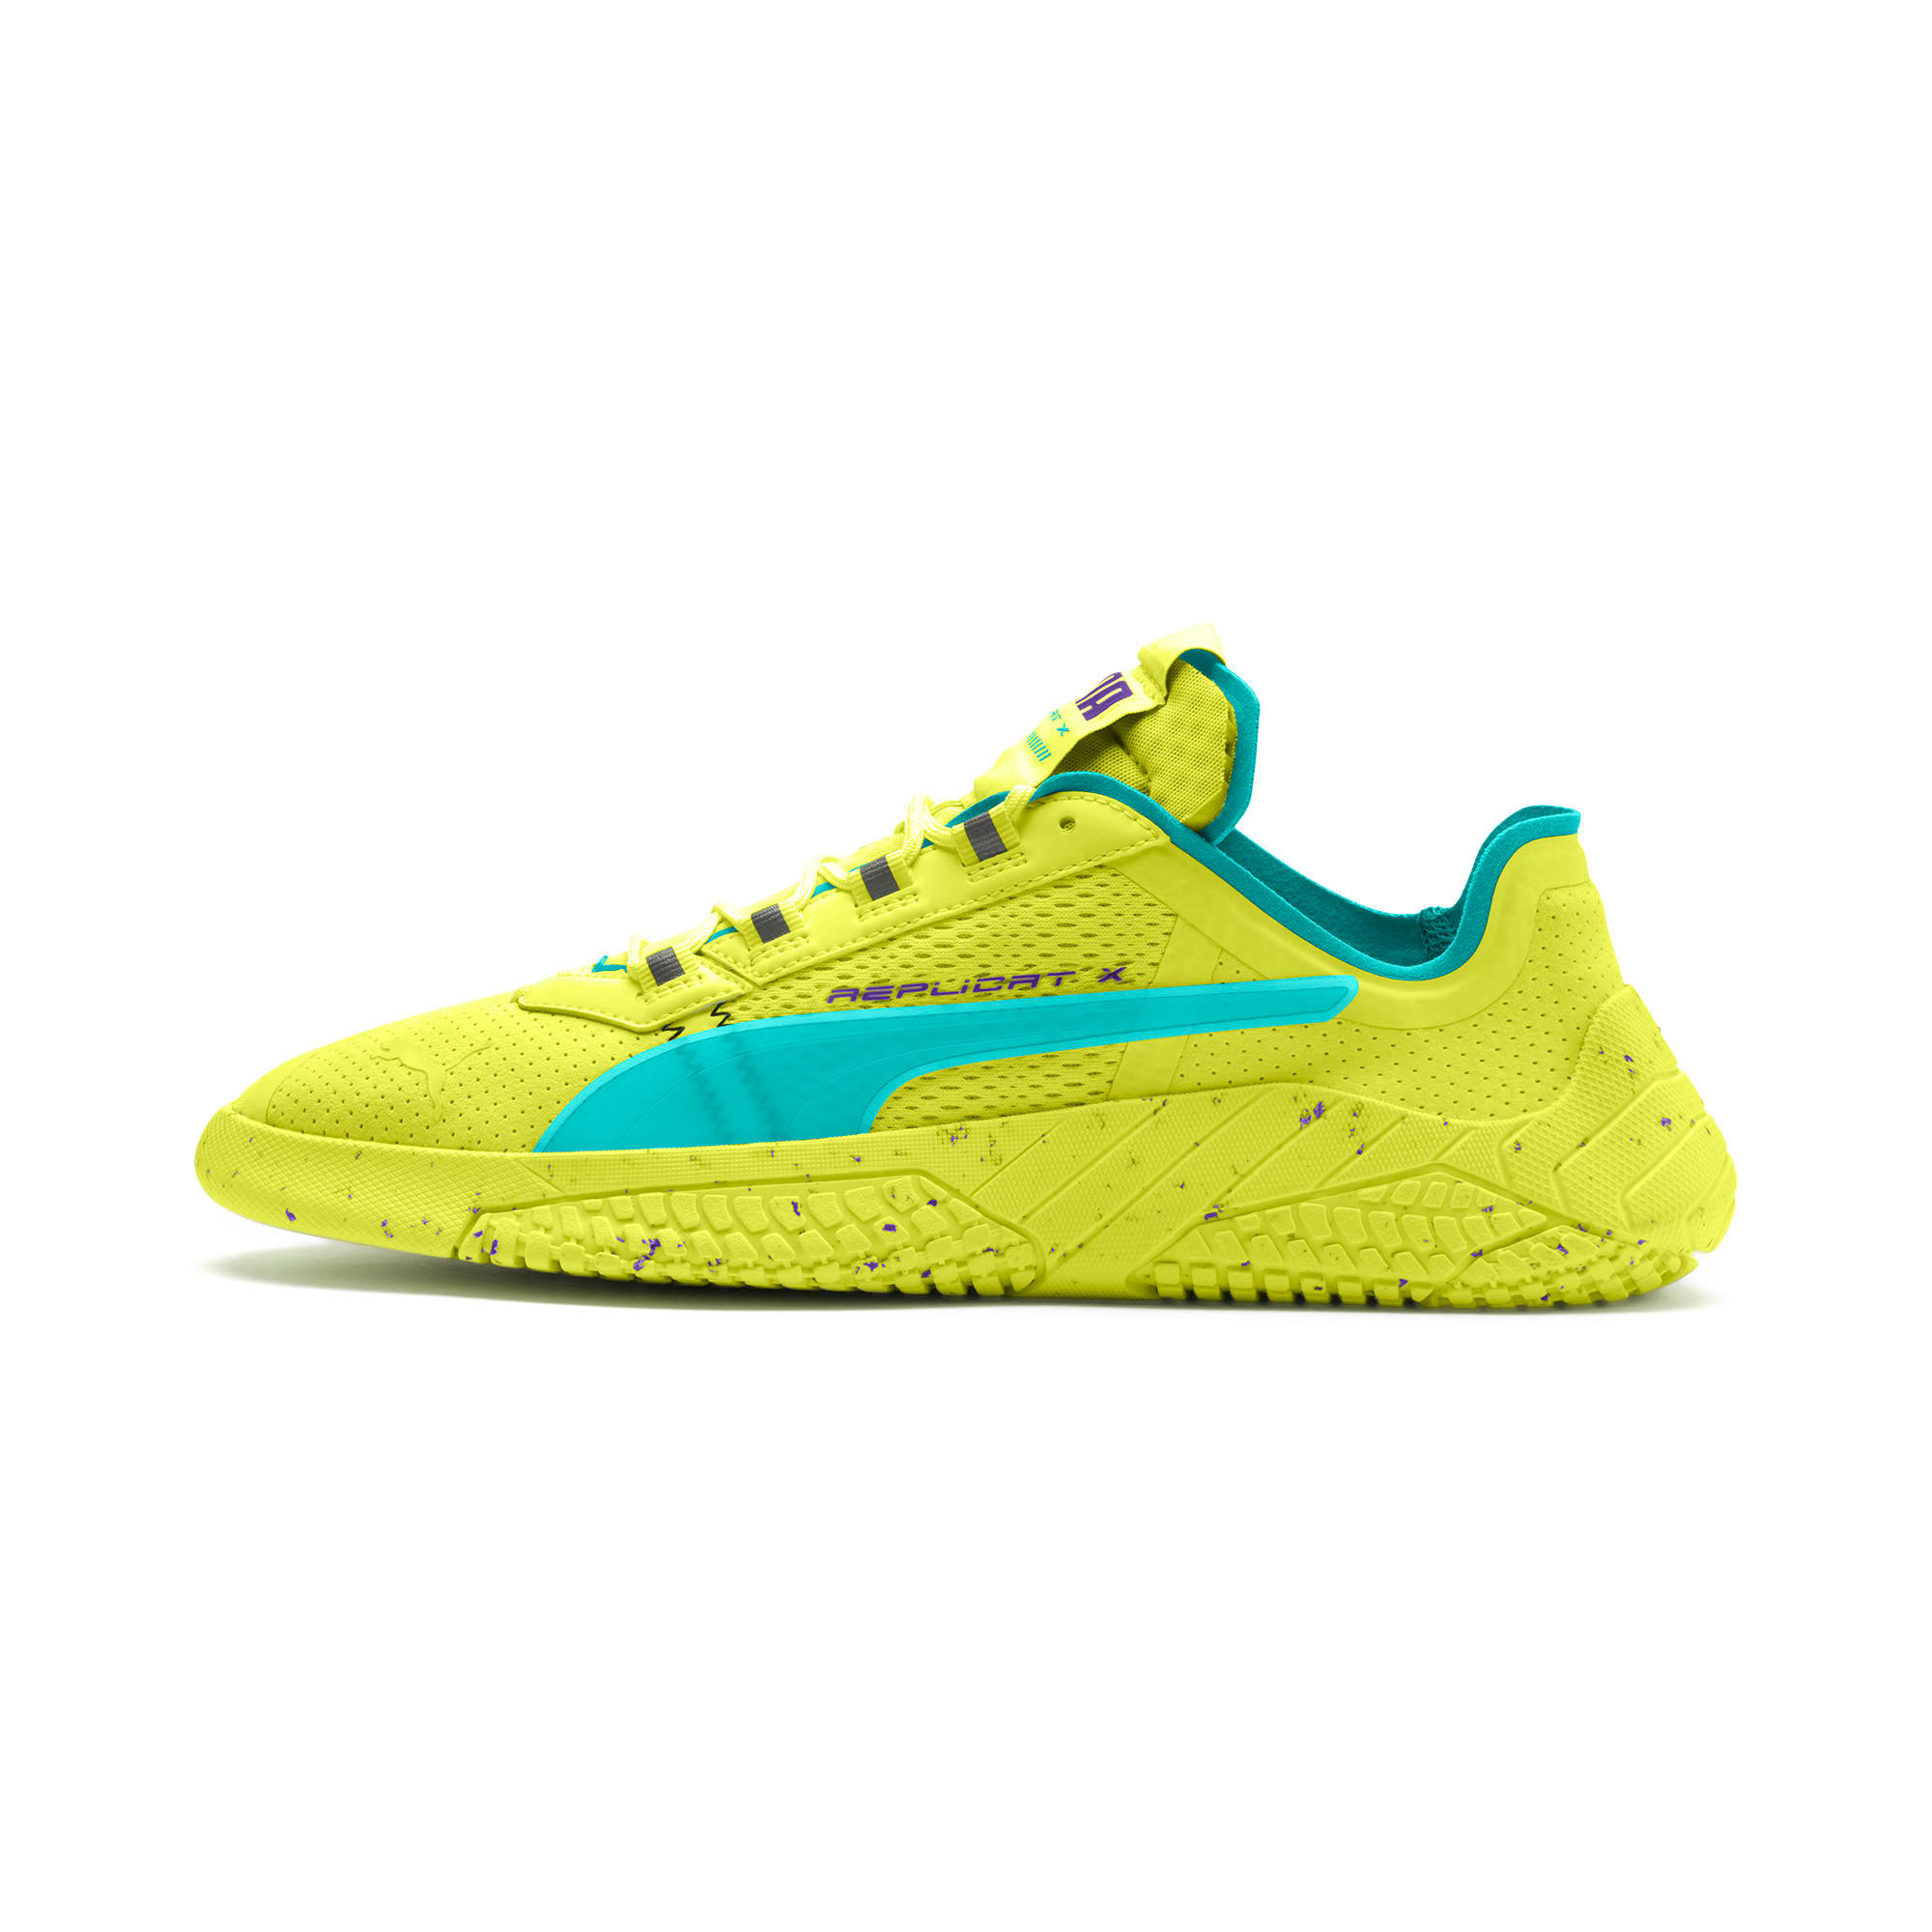 Thumbnail 1 of Replicat-X Fluro Trainers, Fzy Ylw-Blu Trqse-Prpl Glmr, medium